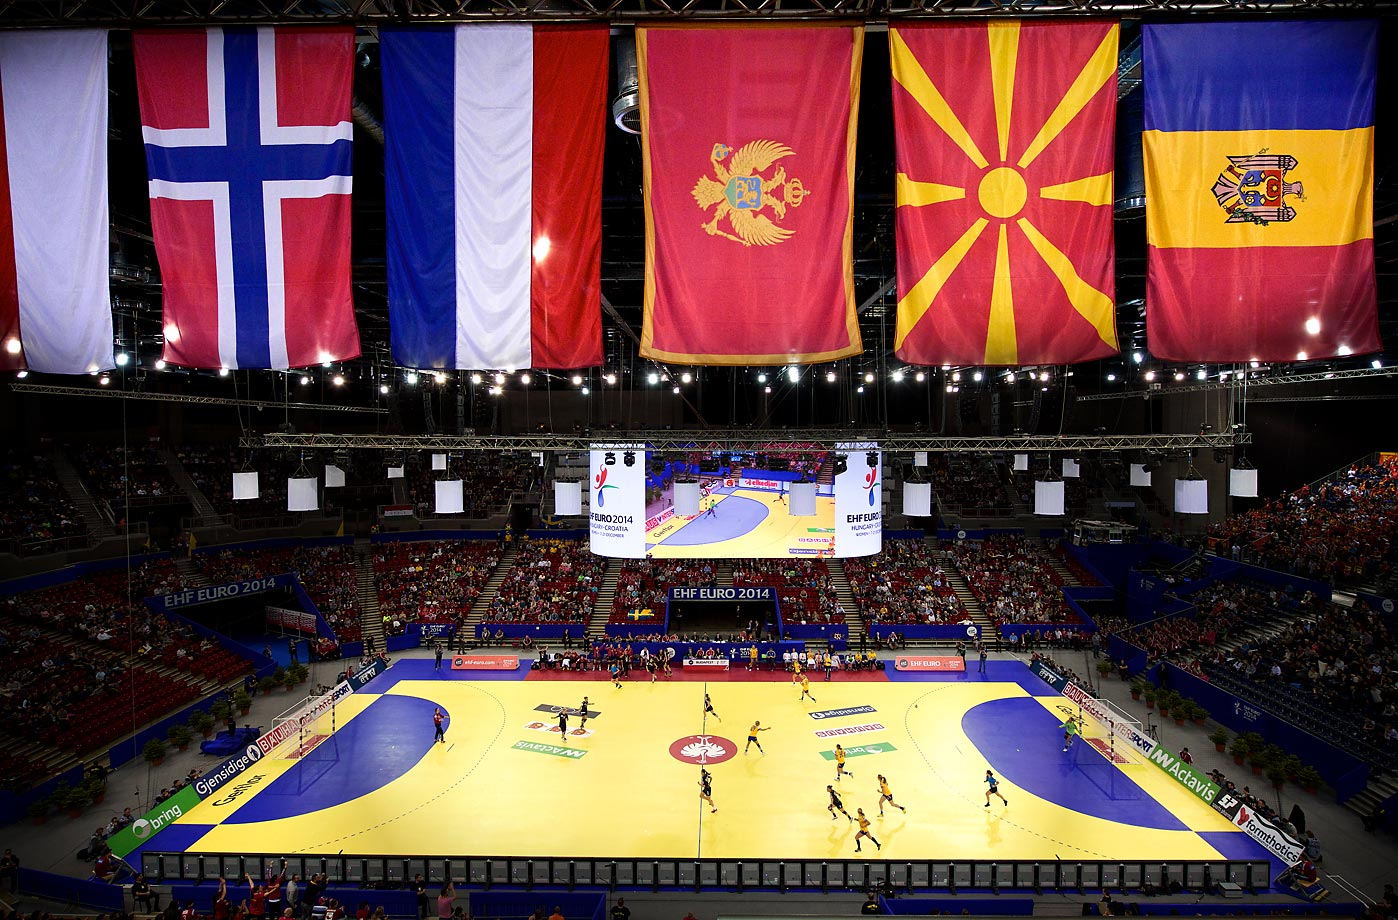 Montenegro takes on Sweden for third place.